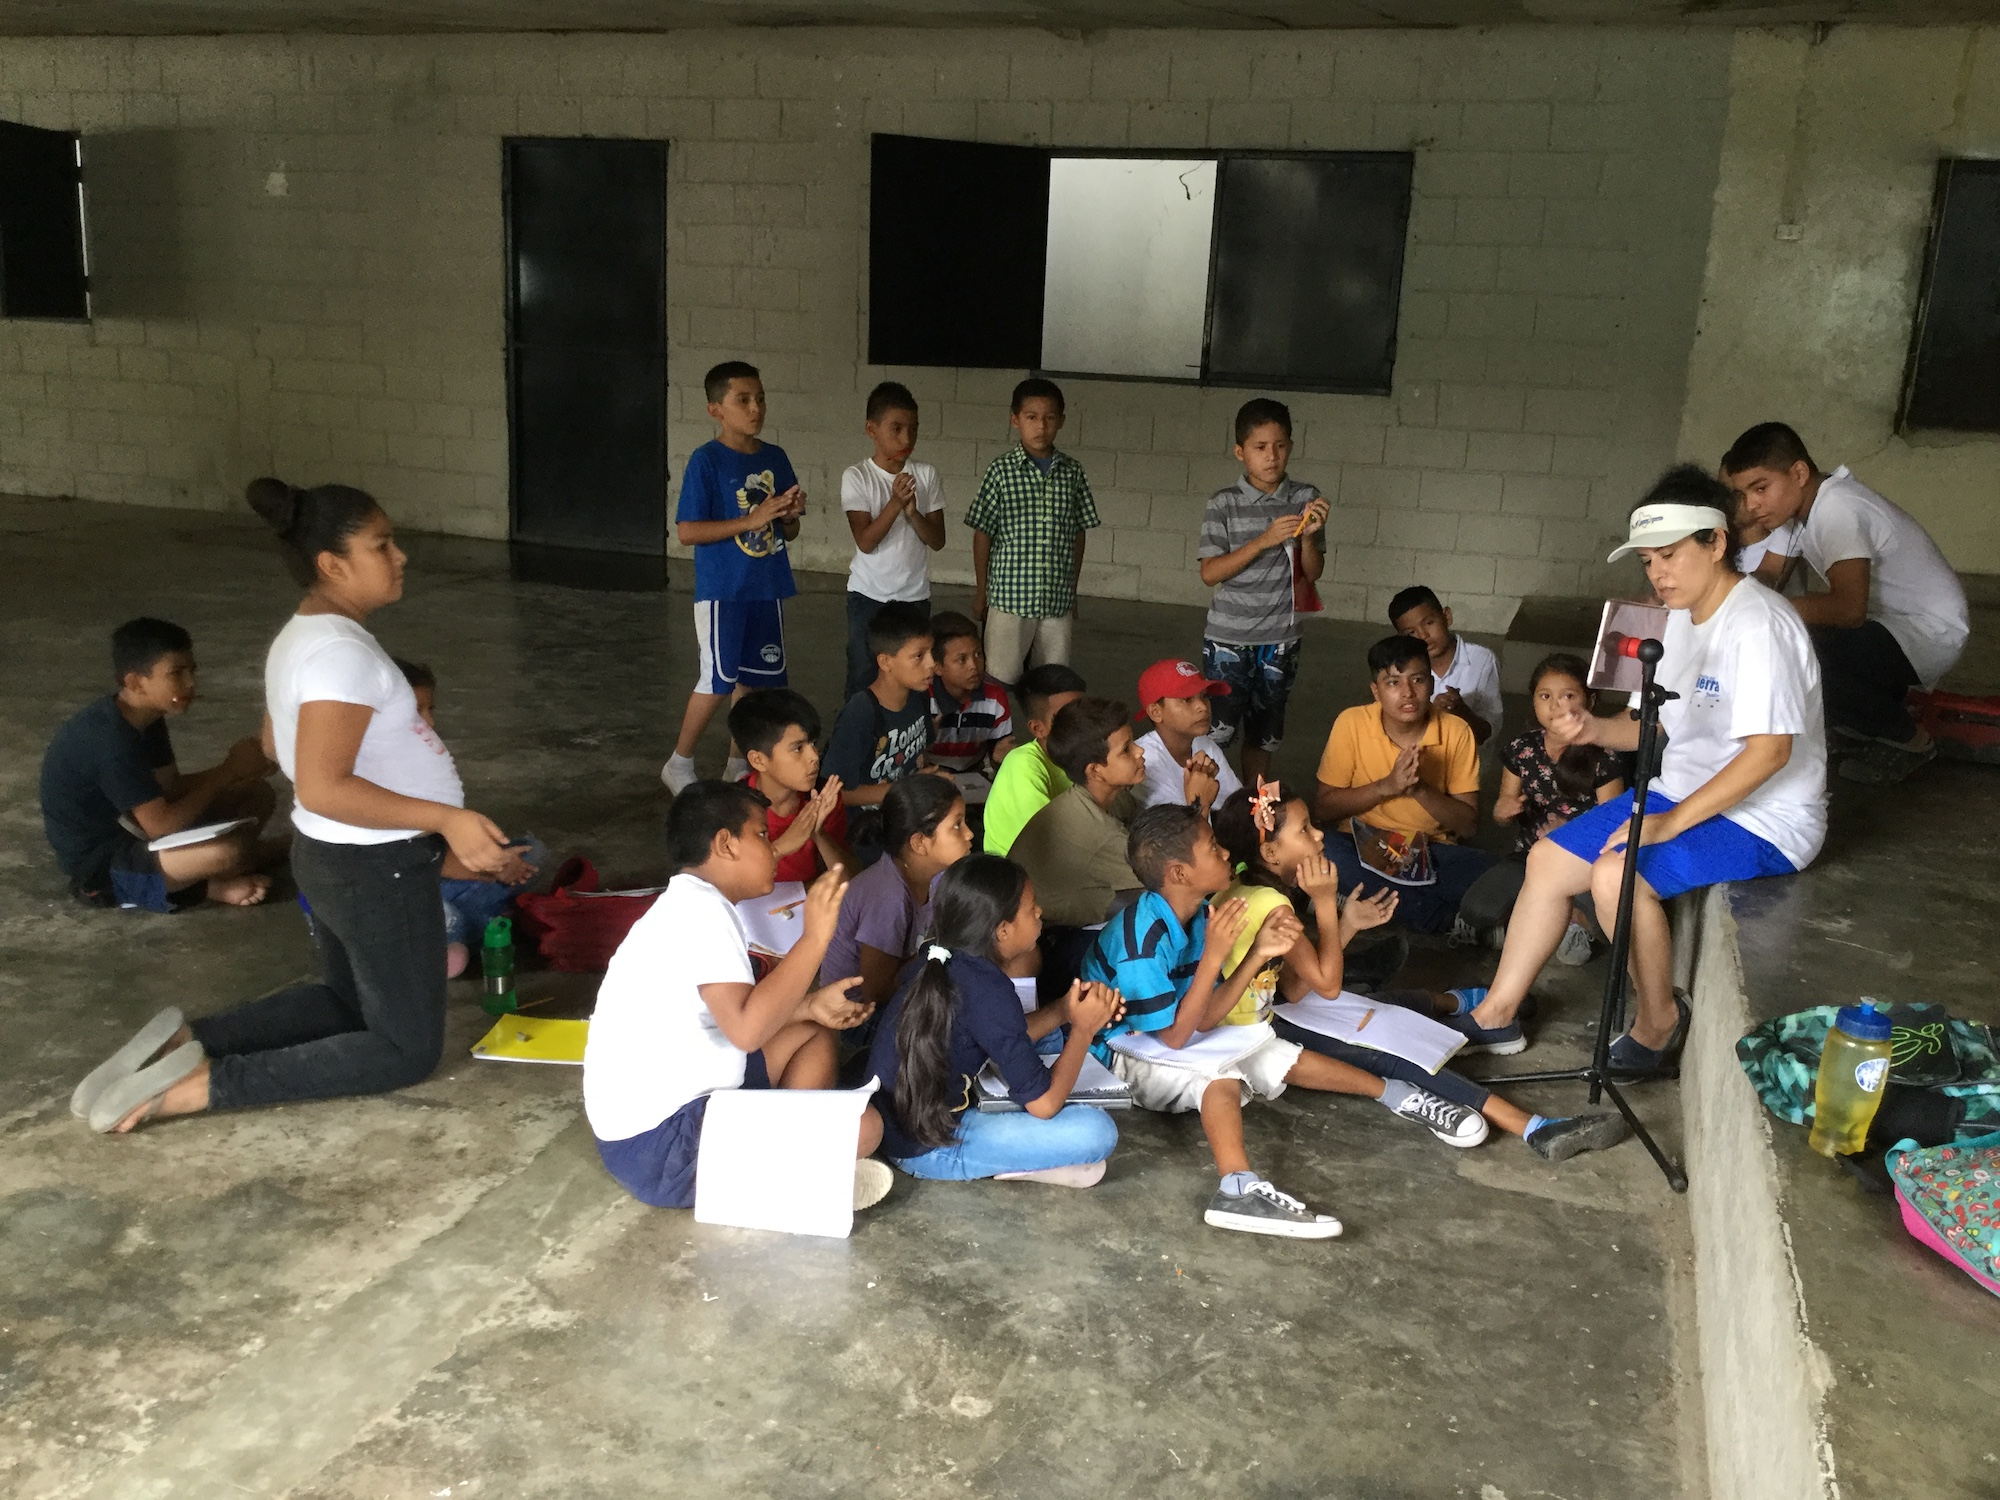 'Music for Purpose' Provides Music Education for Children in Honduras